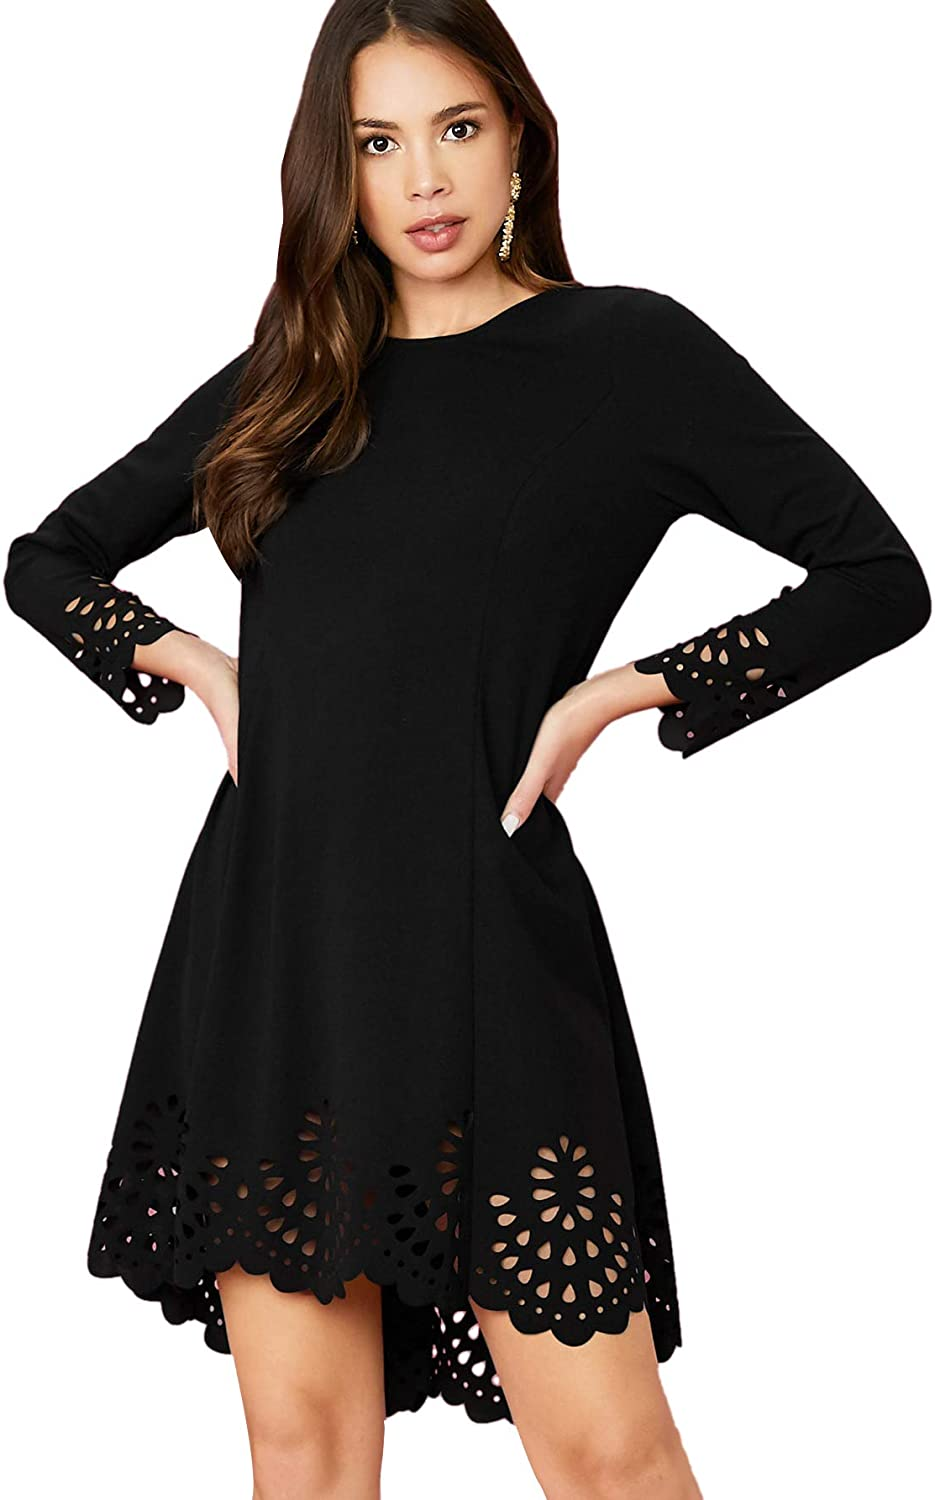 Romwe Womens Plus Laser Cut Out Solid Scallop A-line Dress